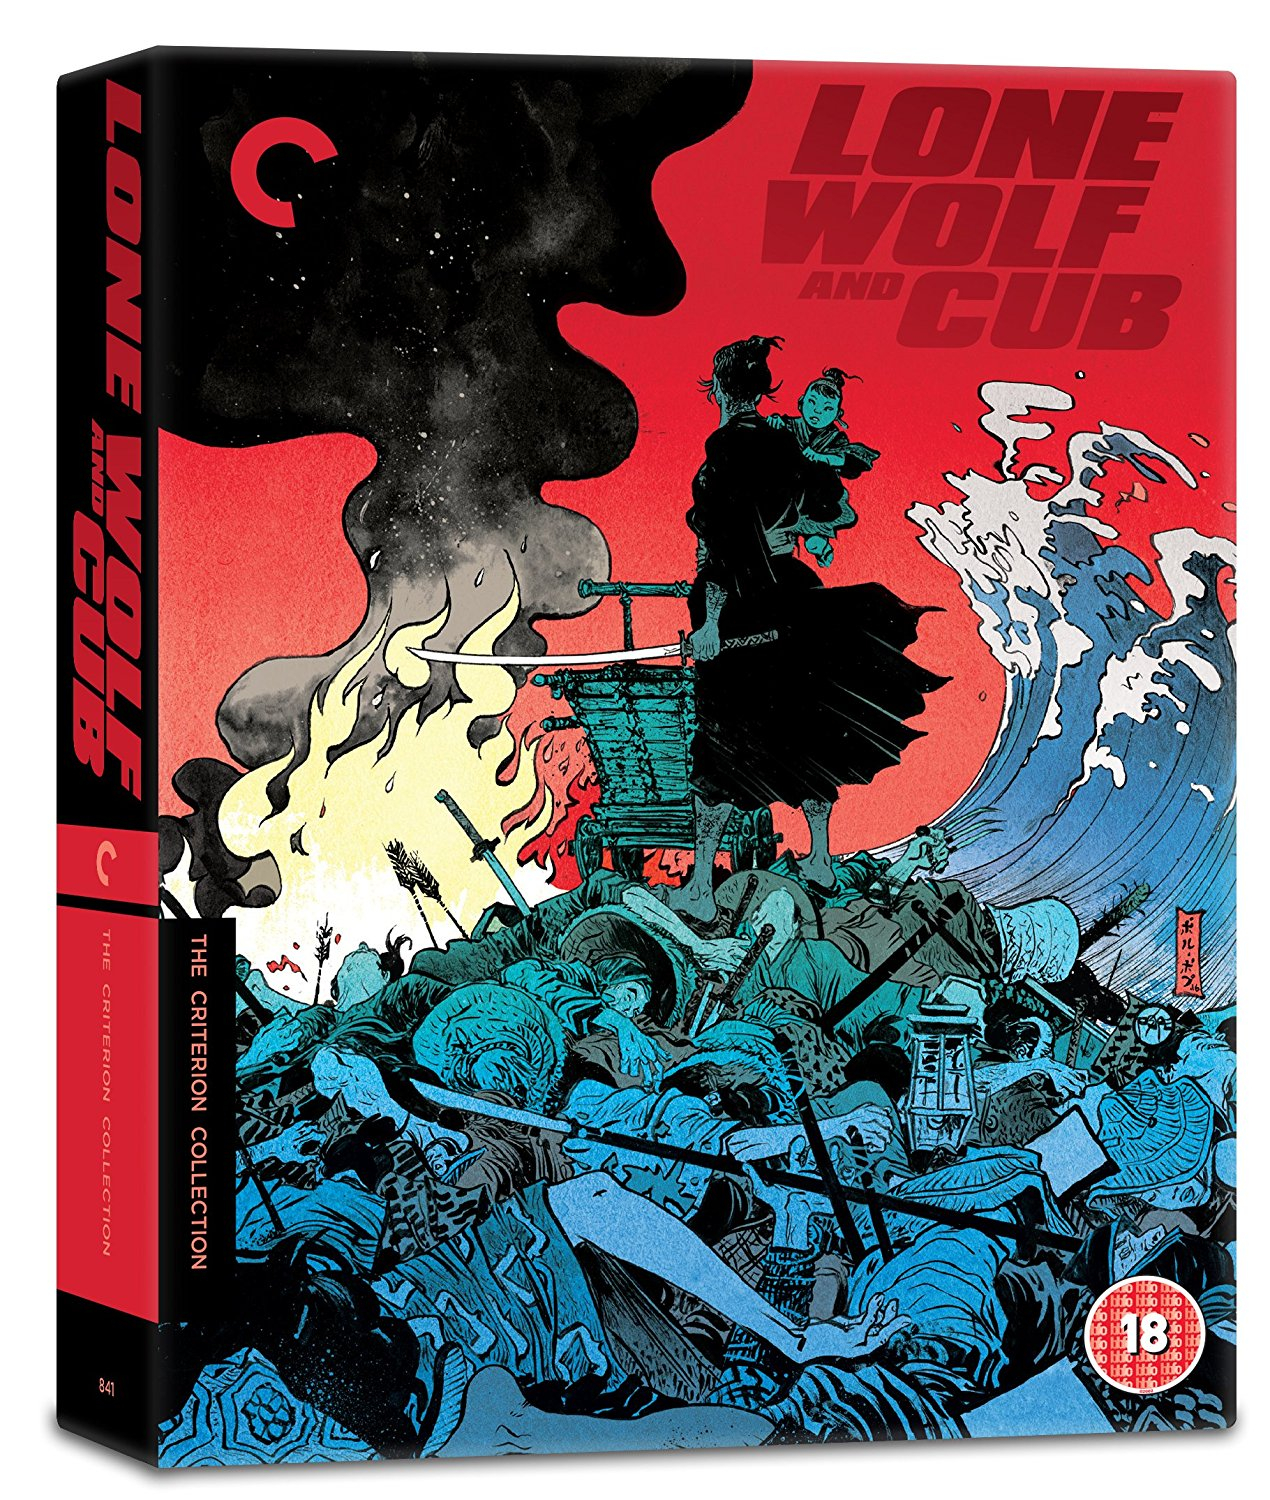 Buy Lone Wolf and Cub - Criterion Collection